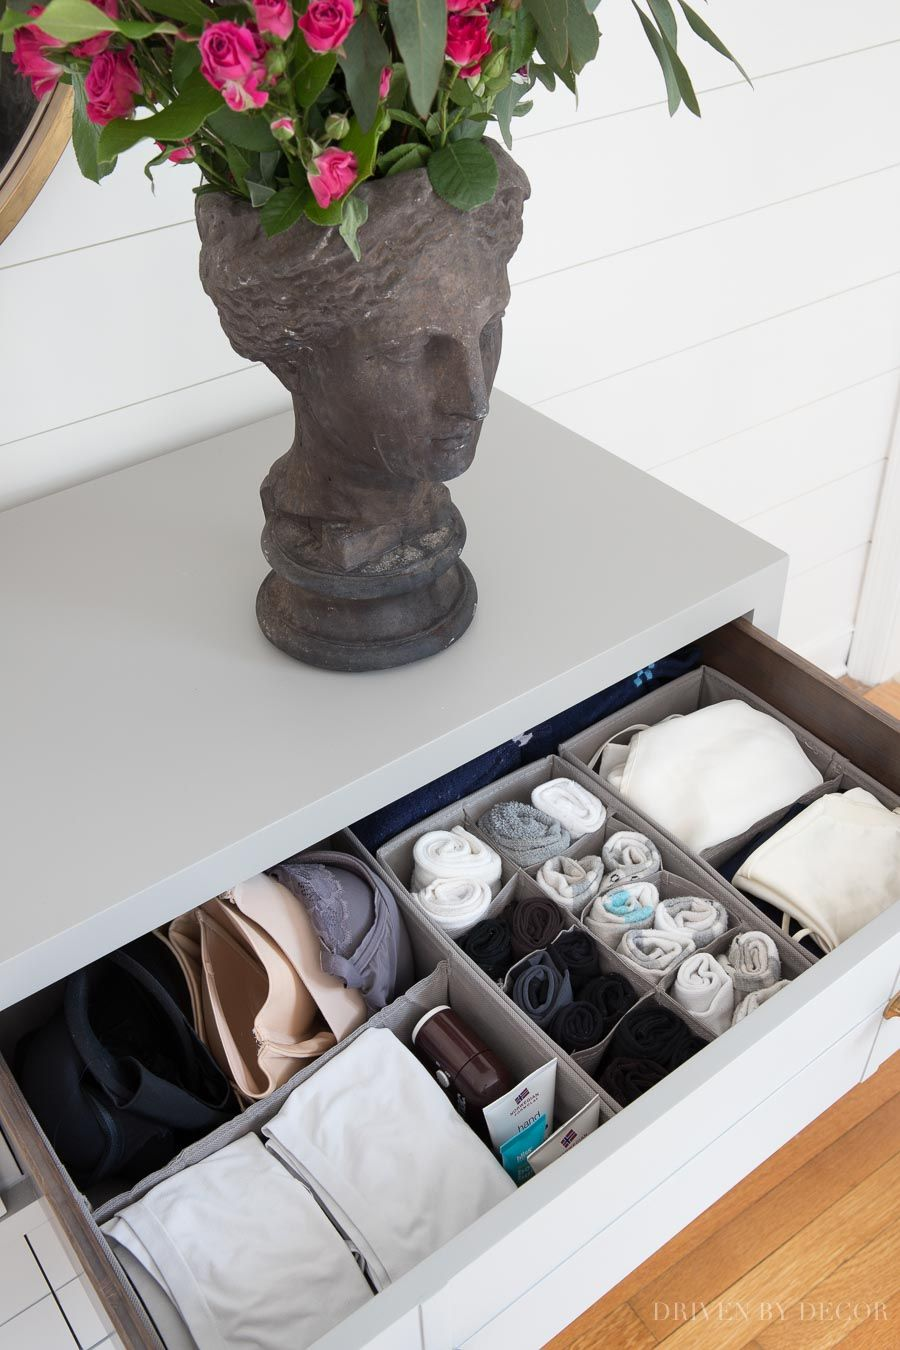 These fabric drawer dividers and organizers (for organizing socks, bras, & more) are awesome! #bedroom #organization #organizing